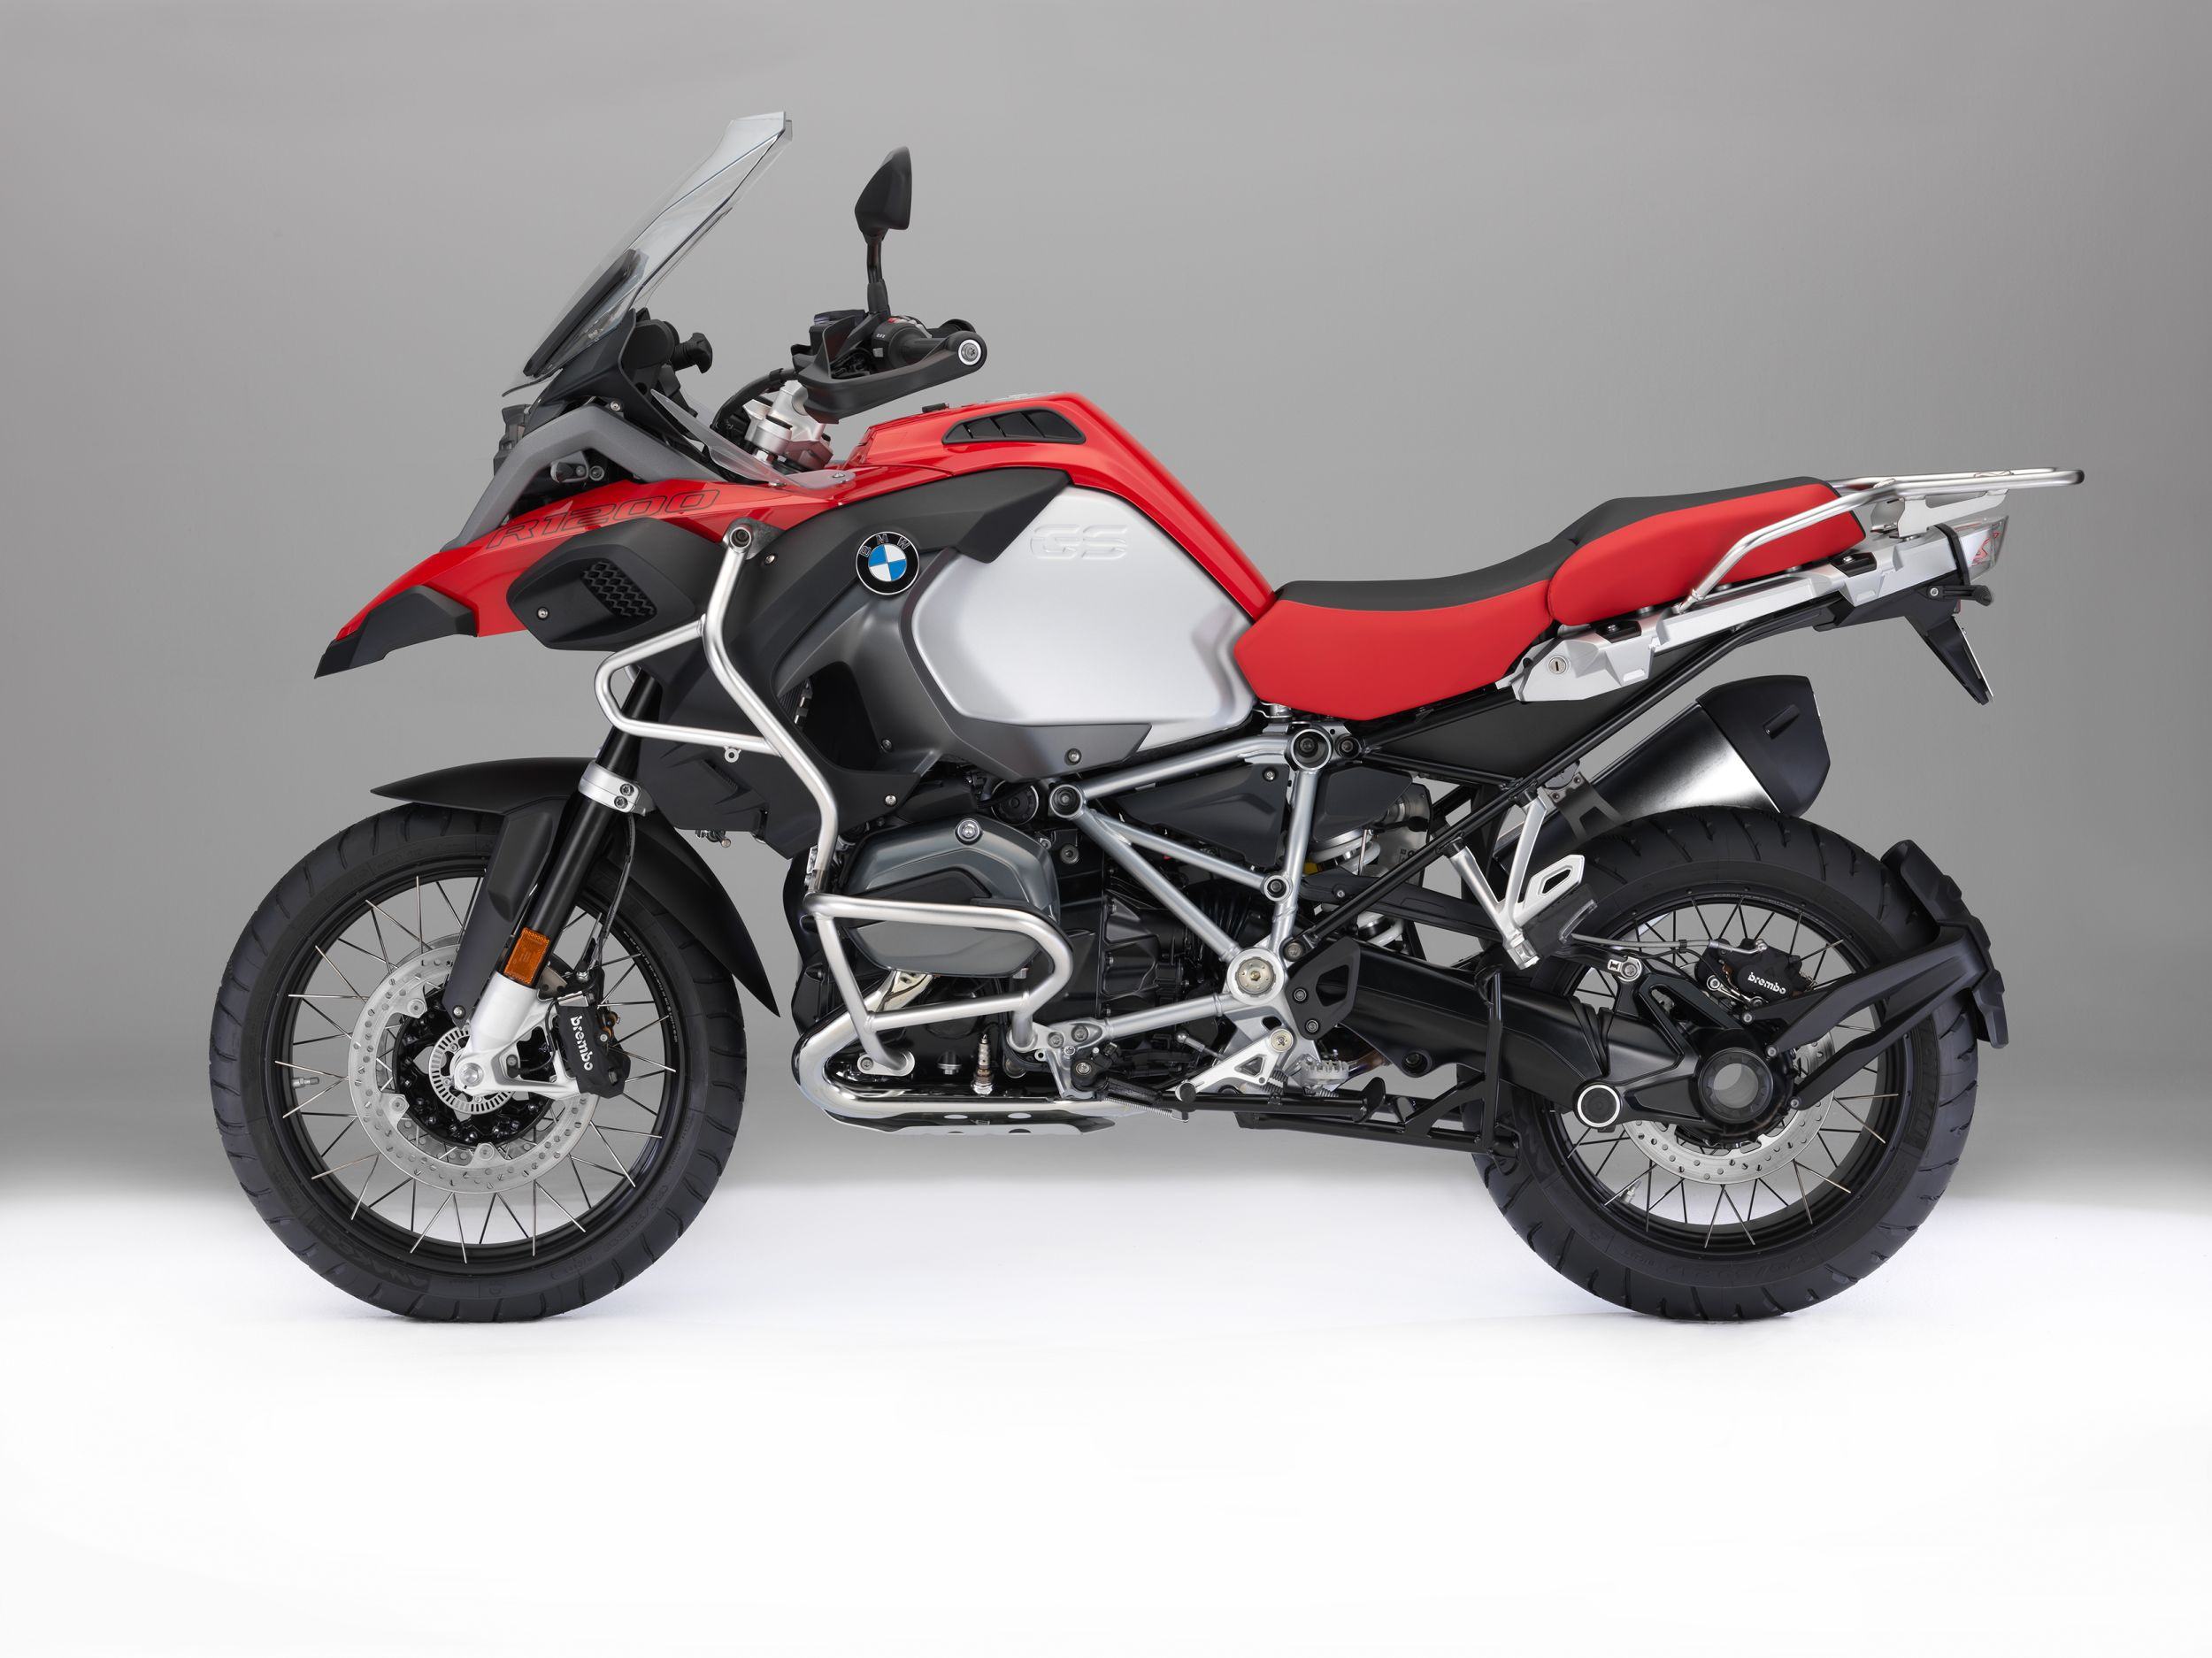 bmw r 1200 gs adventure test gebrauchte bilder technische daten. Black Bedroom Furniture Sets. Home Design Ideas